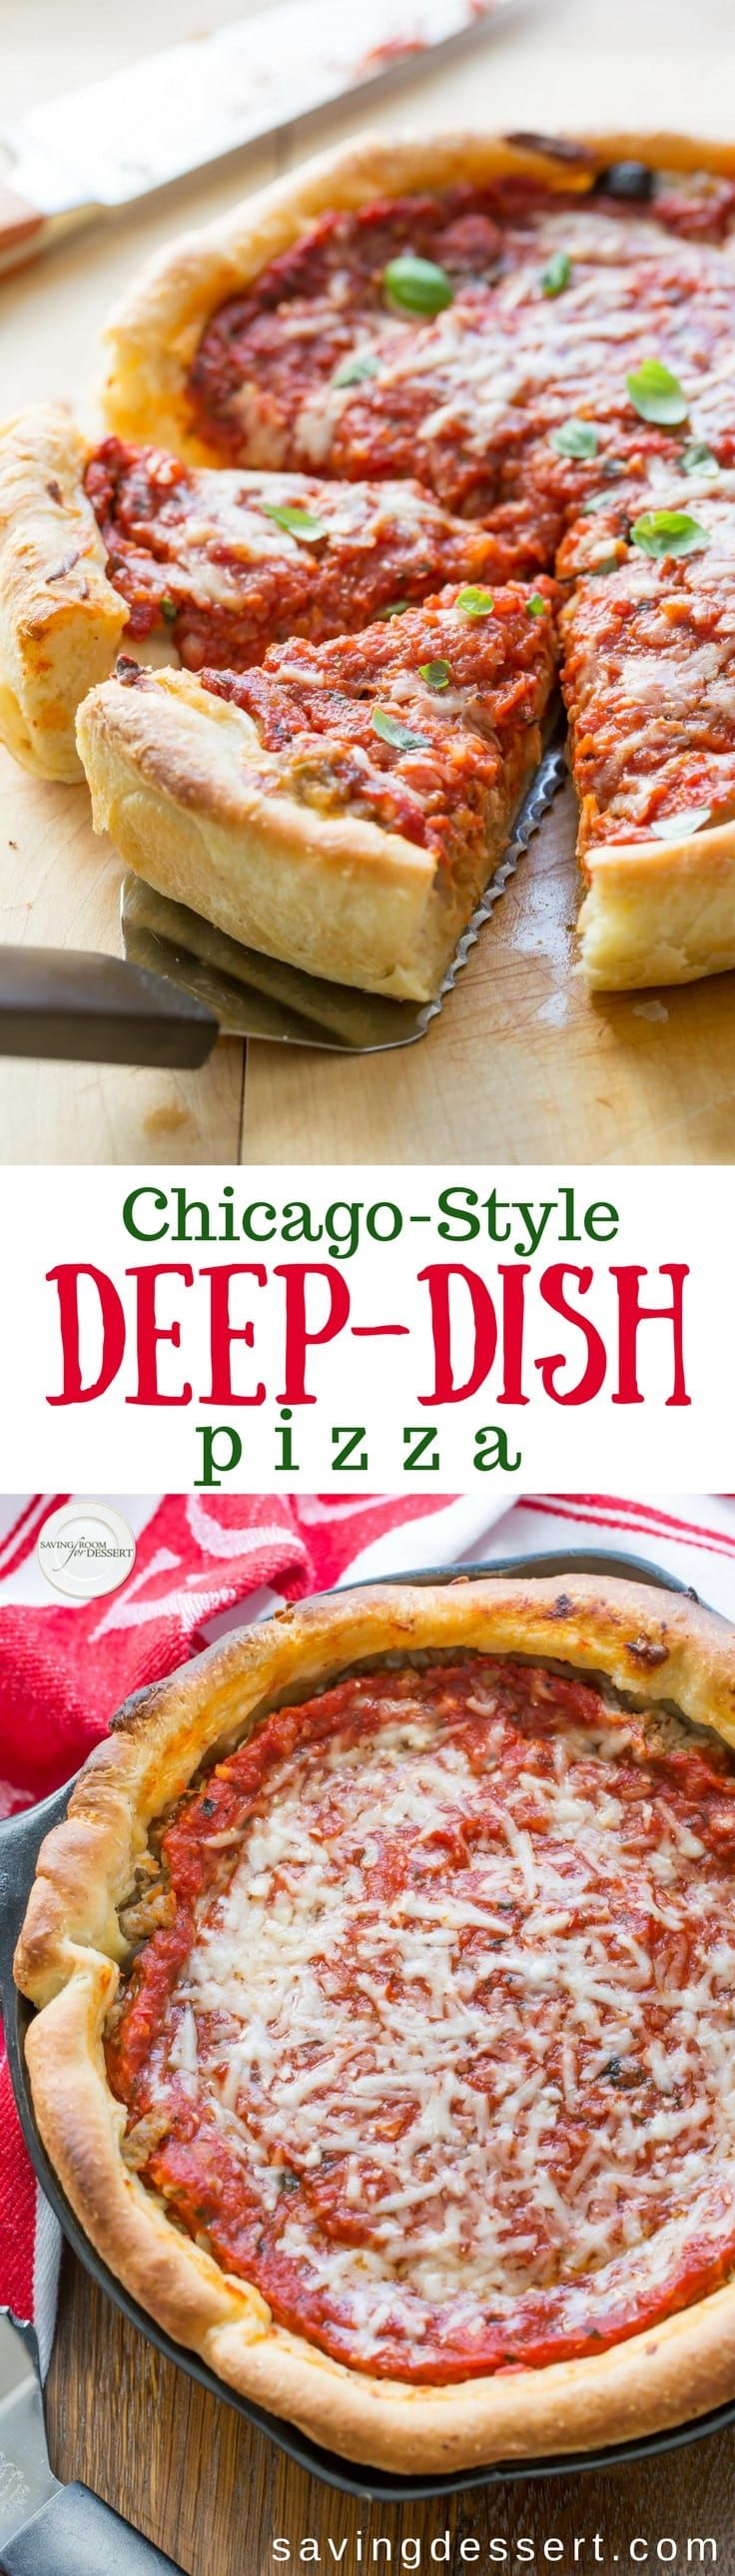 Photo of Chicago-Style Deep-Dish Pizza Recipe